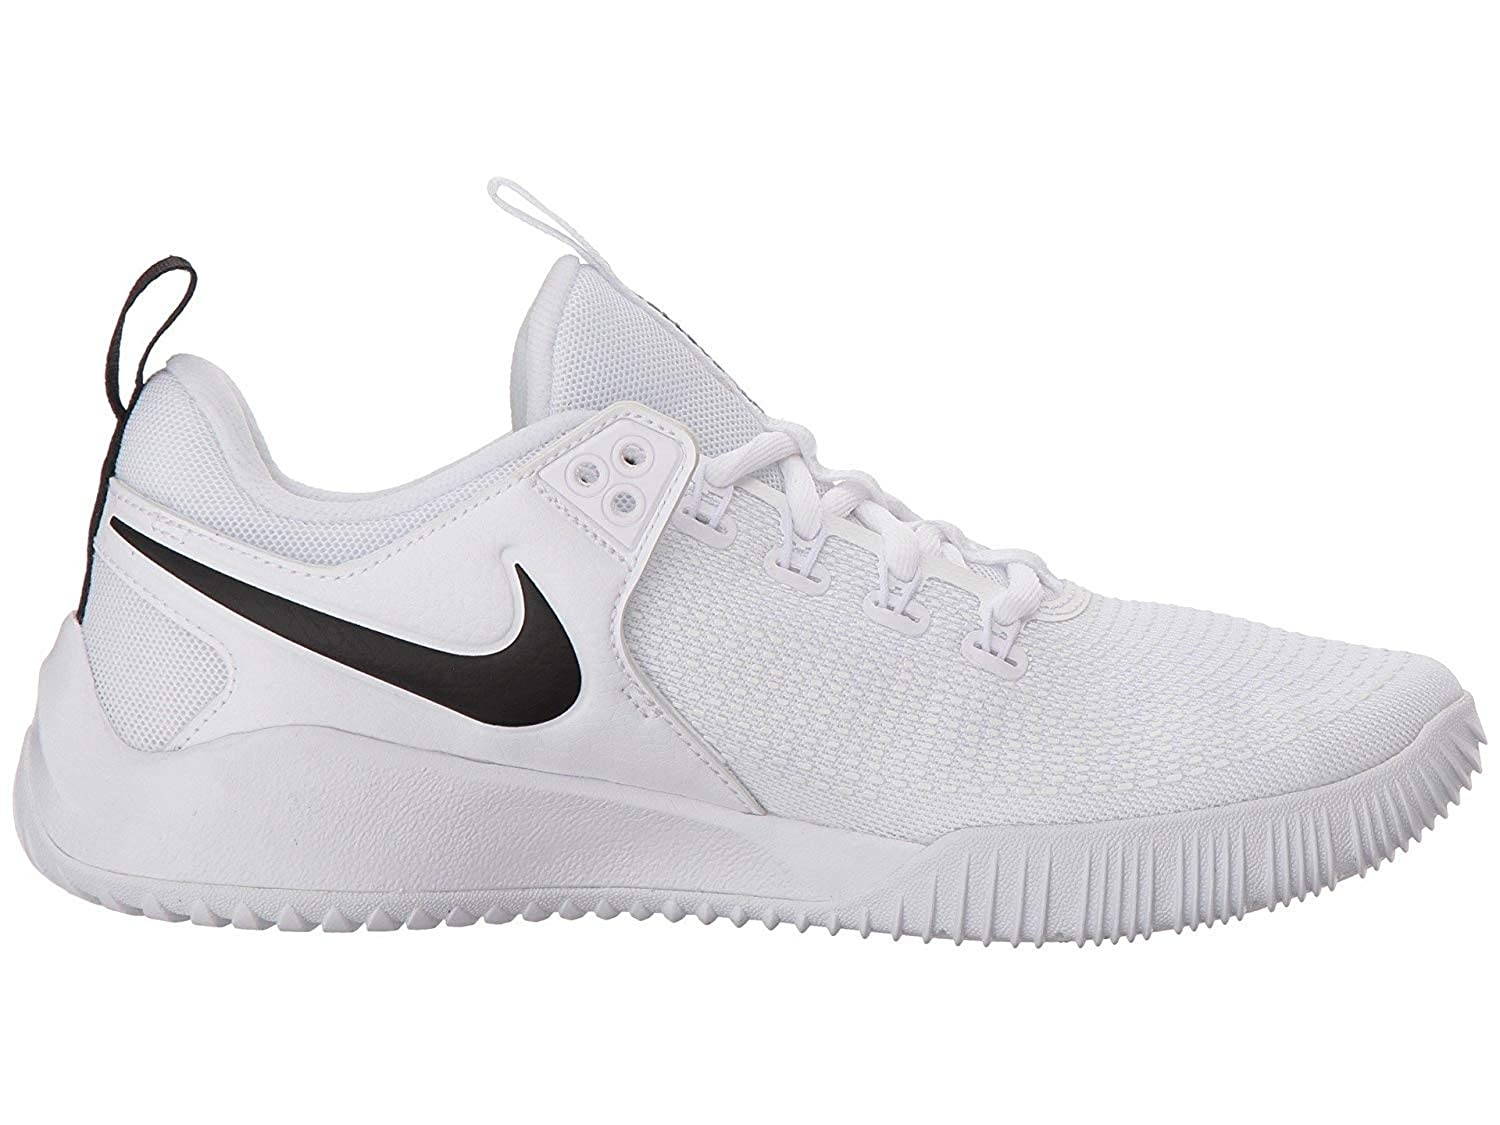 NIKE Women's Air Zoom Hyperace 2 Shoes, 白い/黒, 11.5 B US